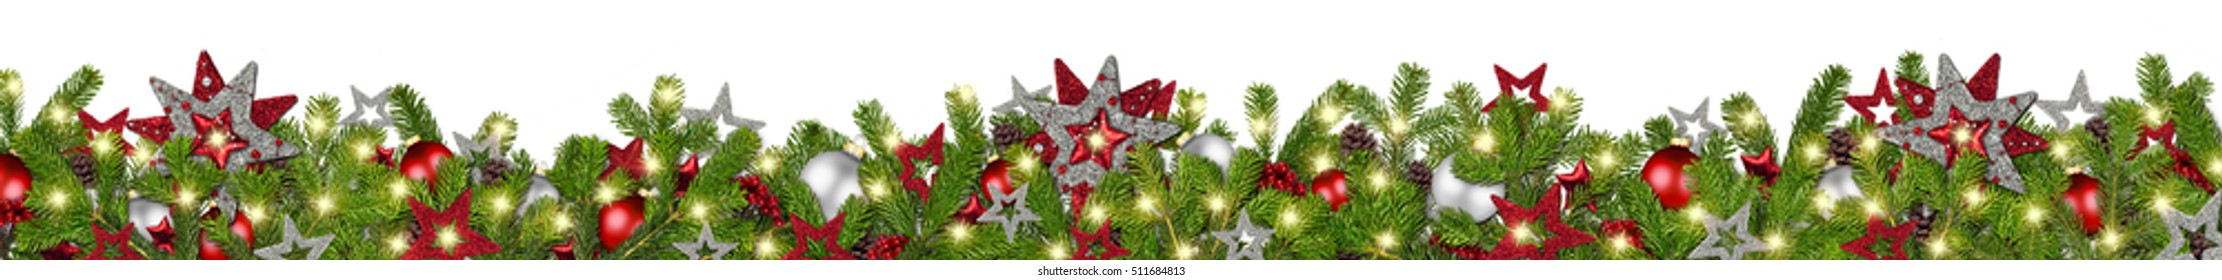 christmas garland super wide panorama banner with fir branches red silver stars lights and baubles xmas decoration isolated on white background